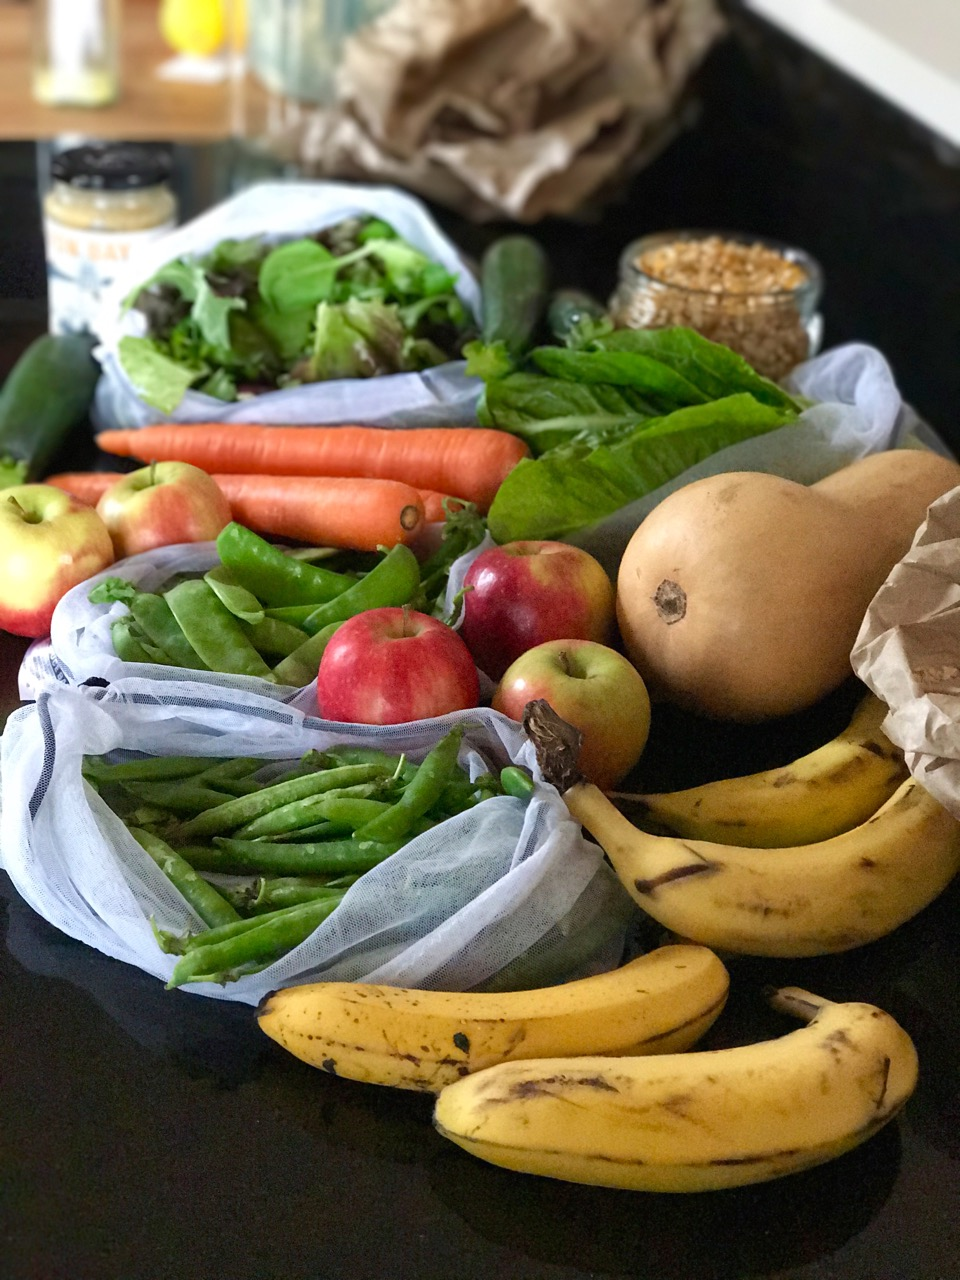 Last week's fruit & veggie shop, packed in our ONYA produce bags, made from recycled plastic bottles.